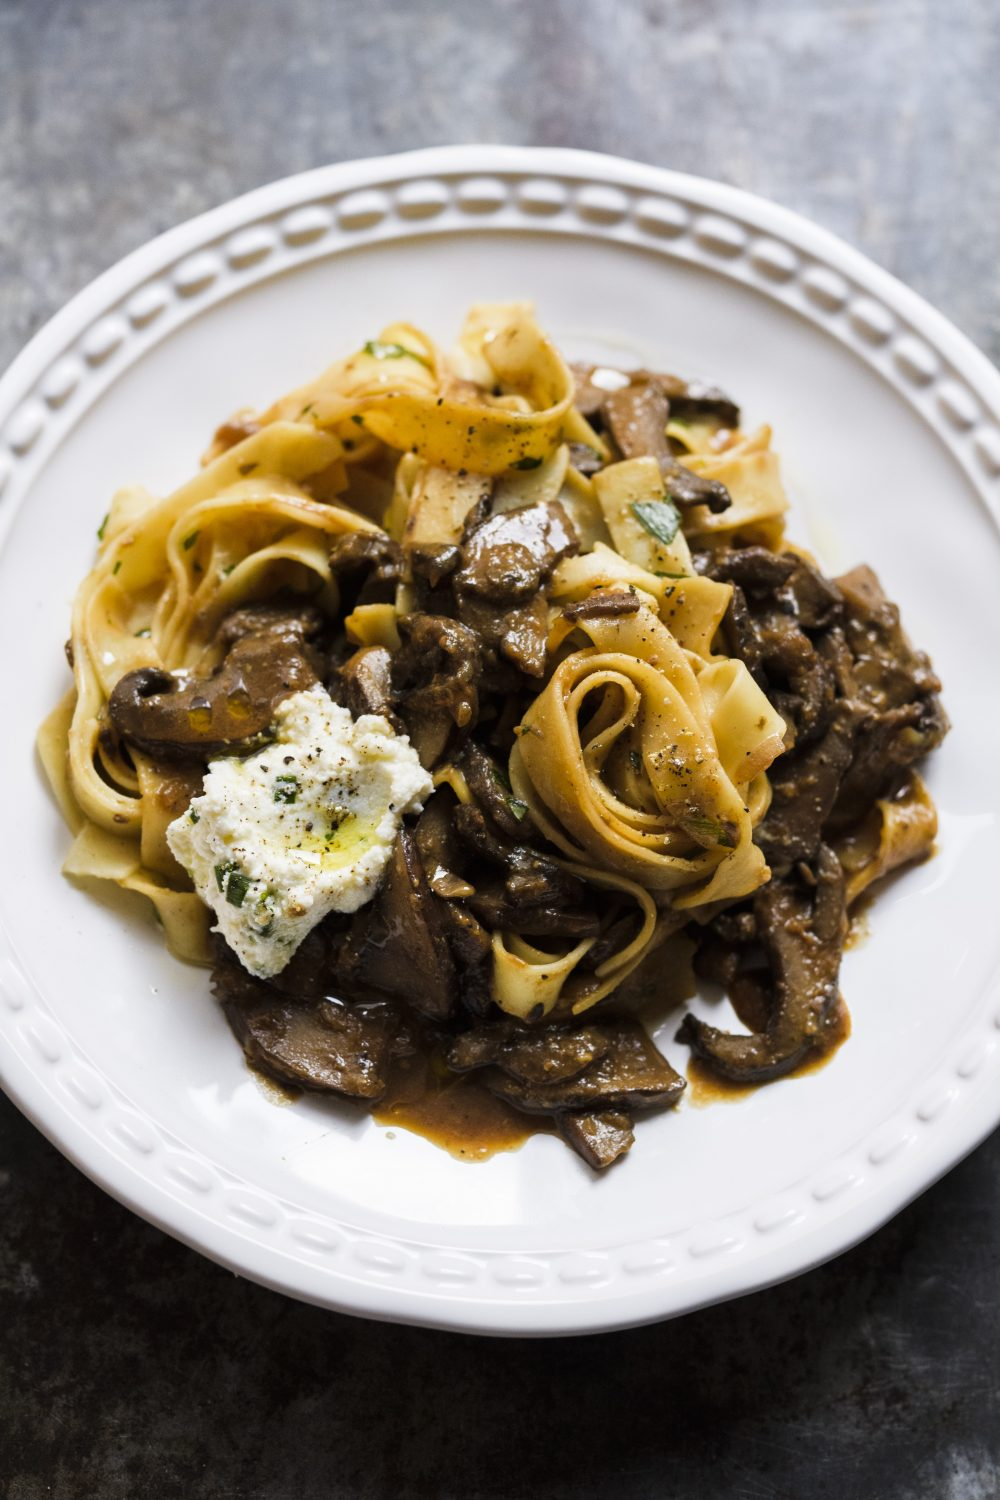 Tagliatelle with Portobellos and Chive Ricotta